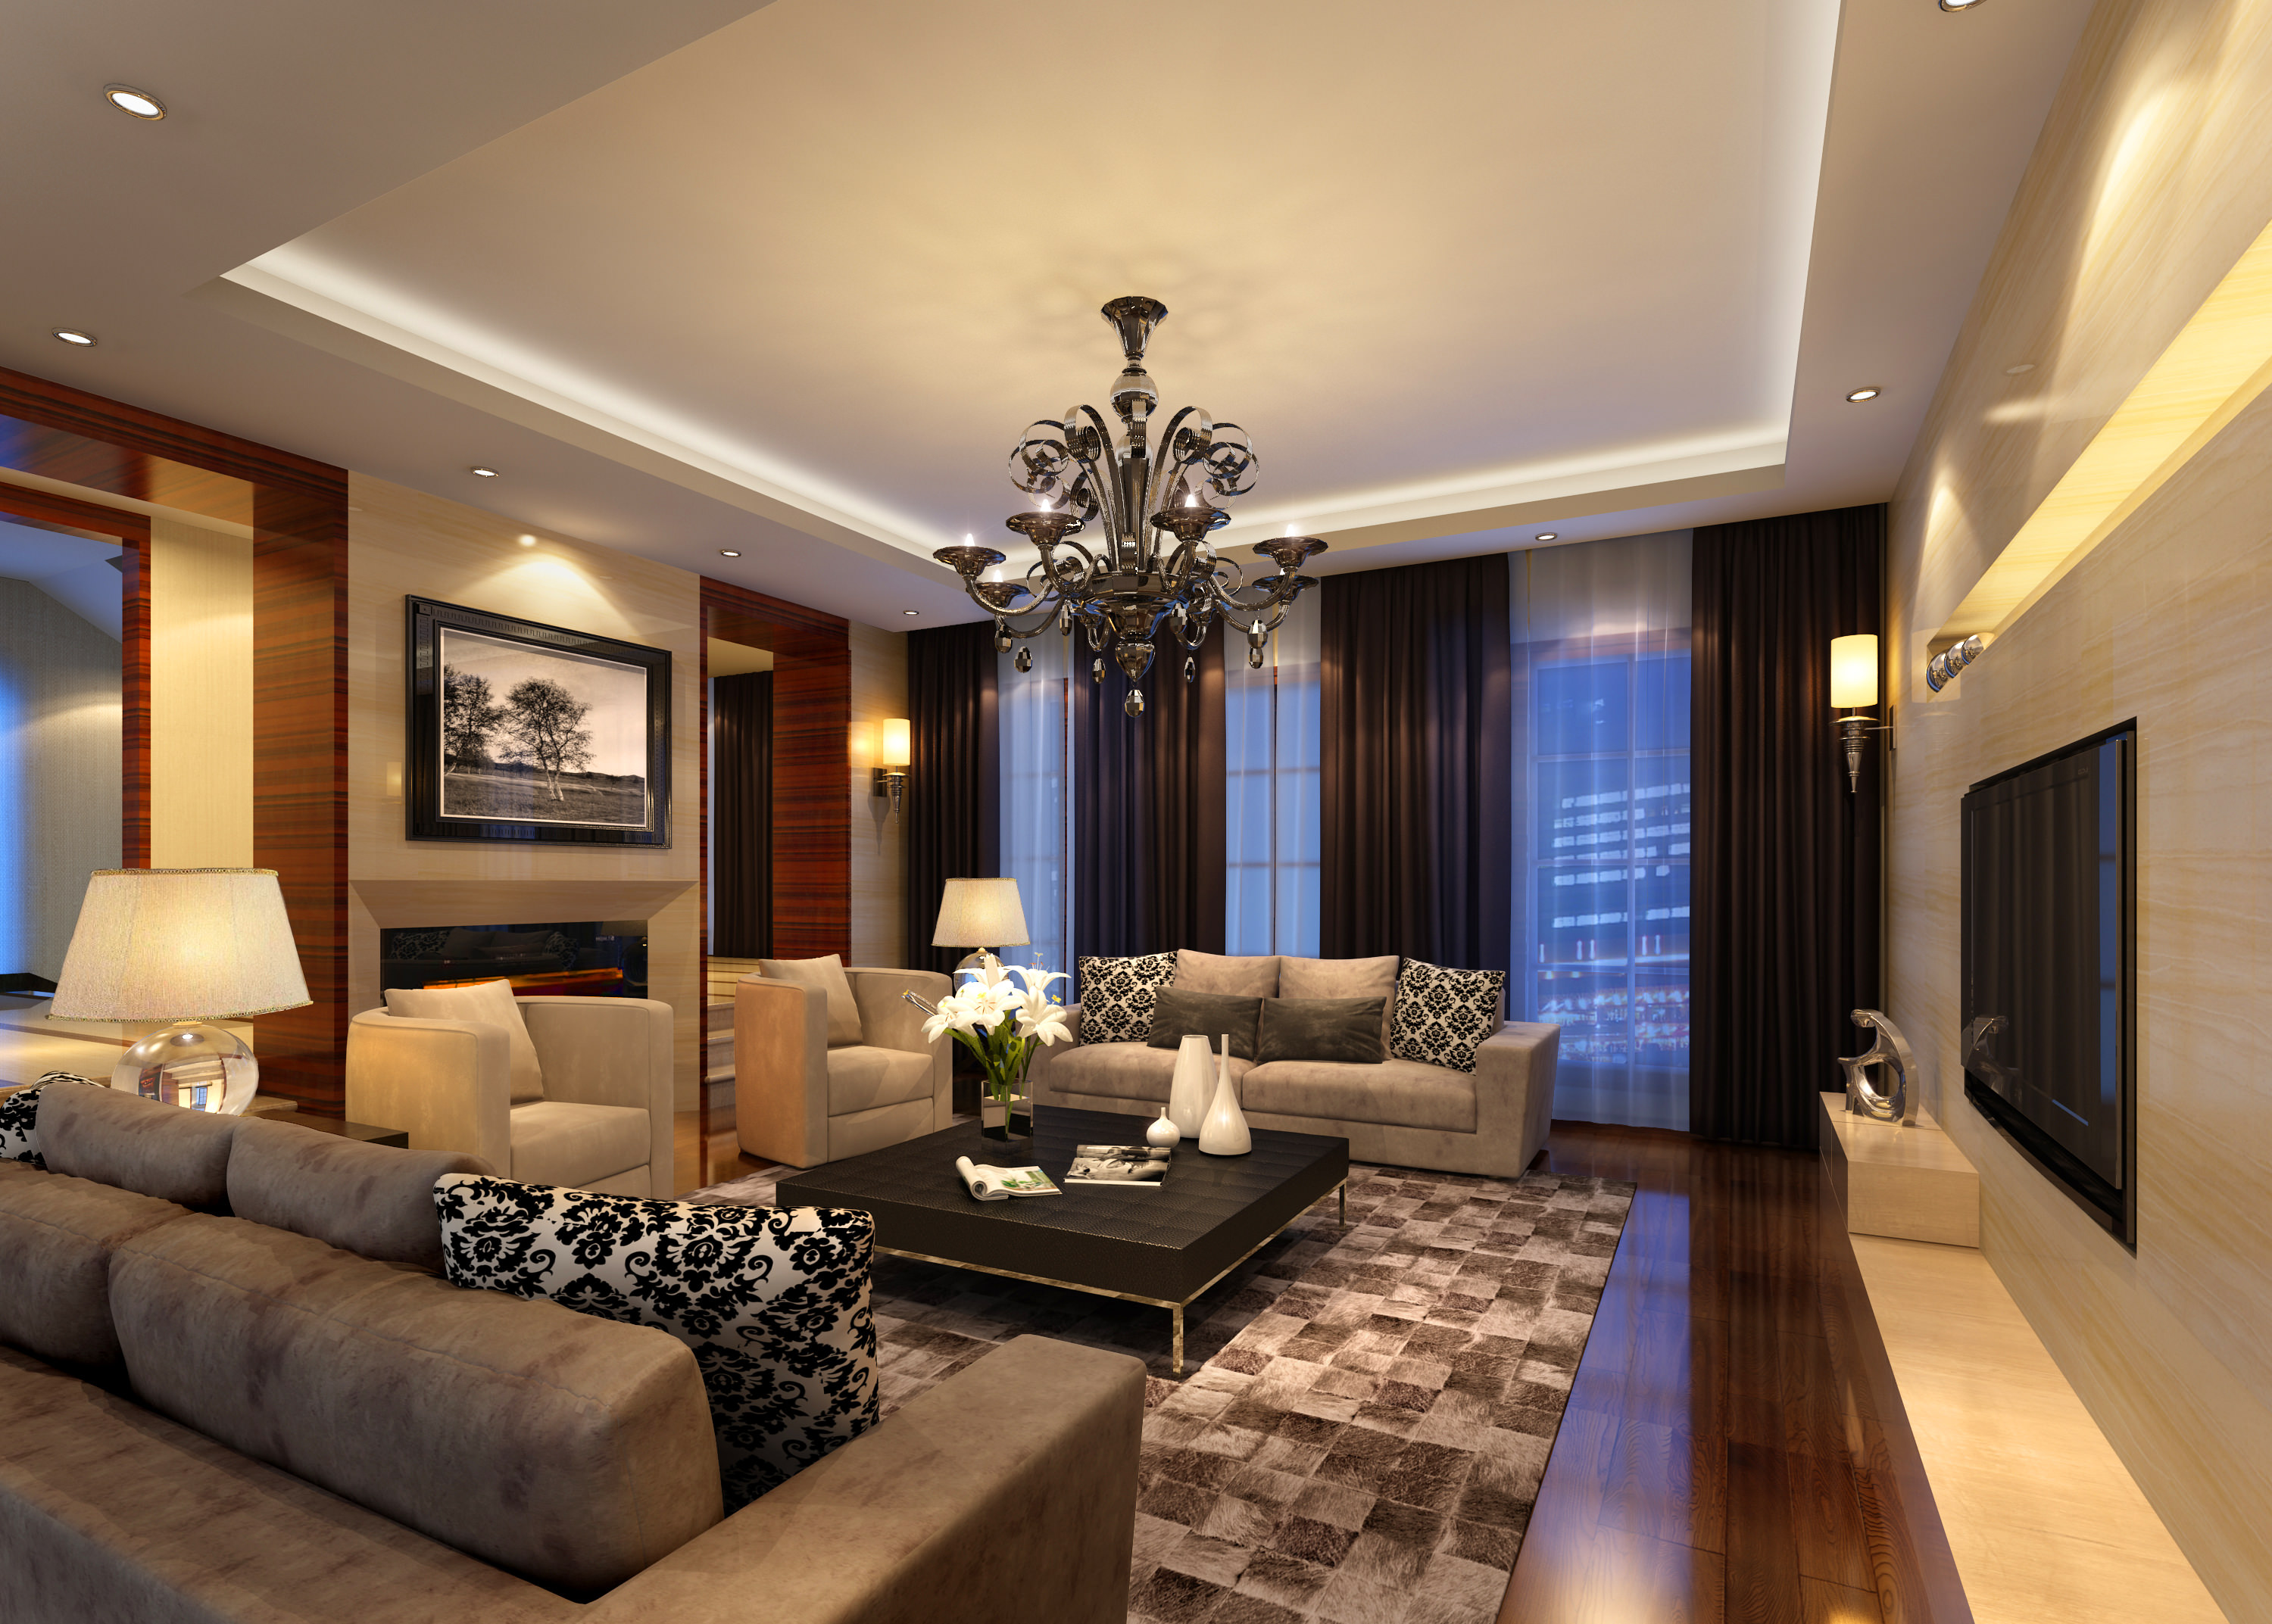 Living room 3d model max for Apartment design models